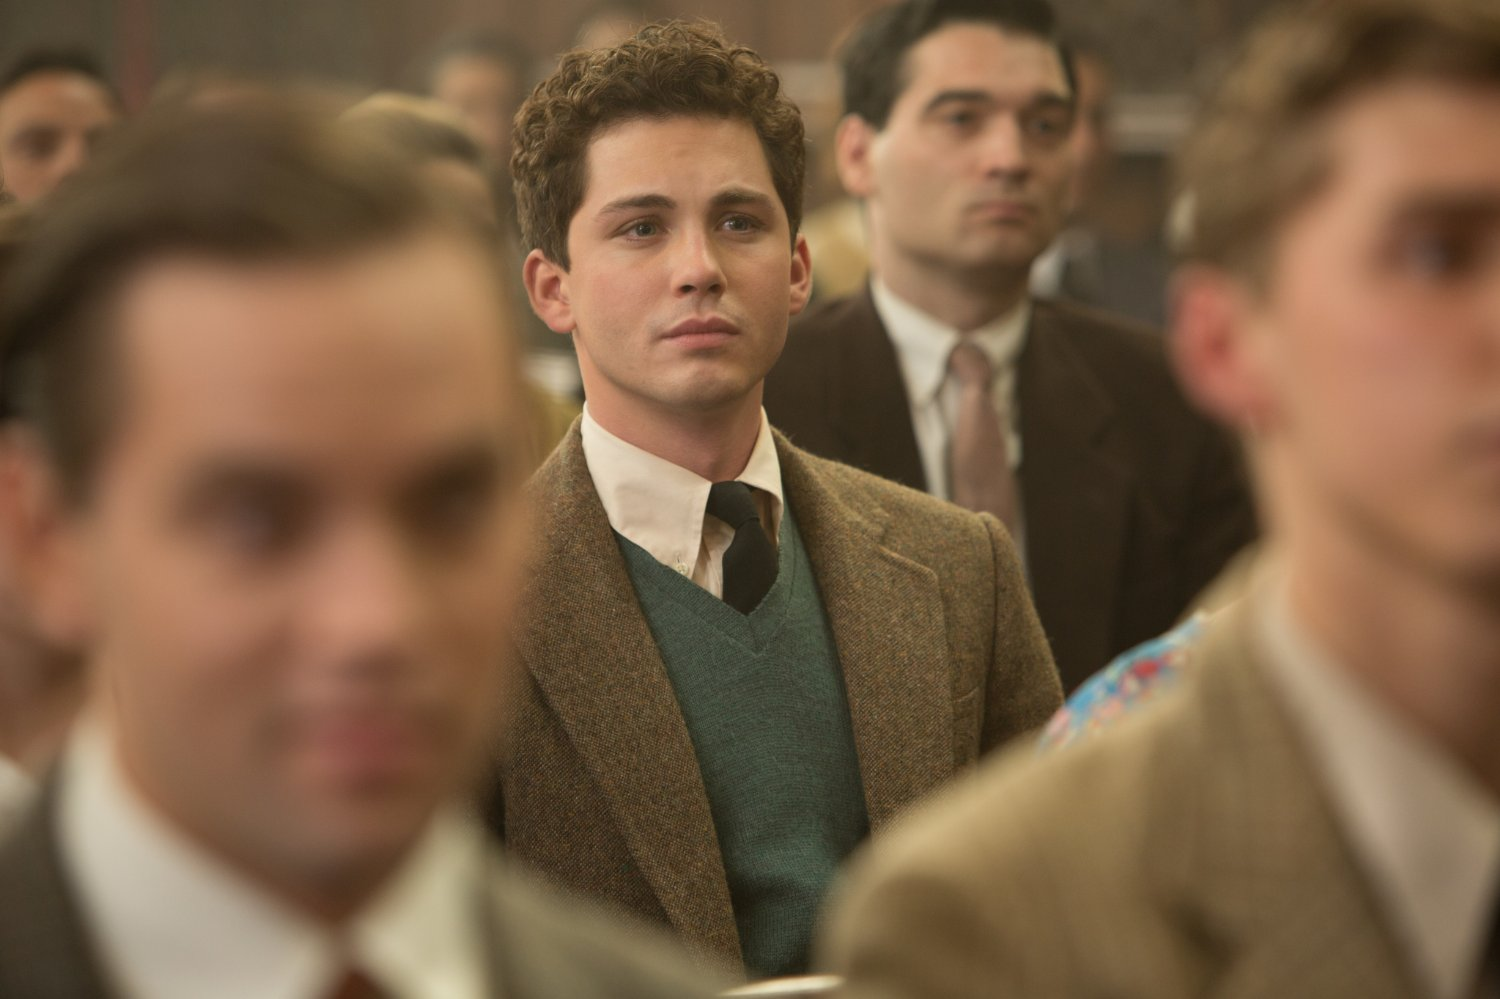 Who is logan lerman currently dating 2020